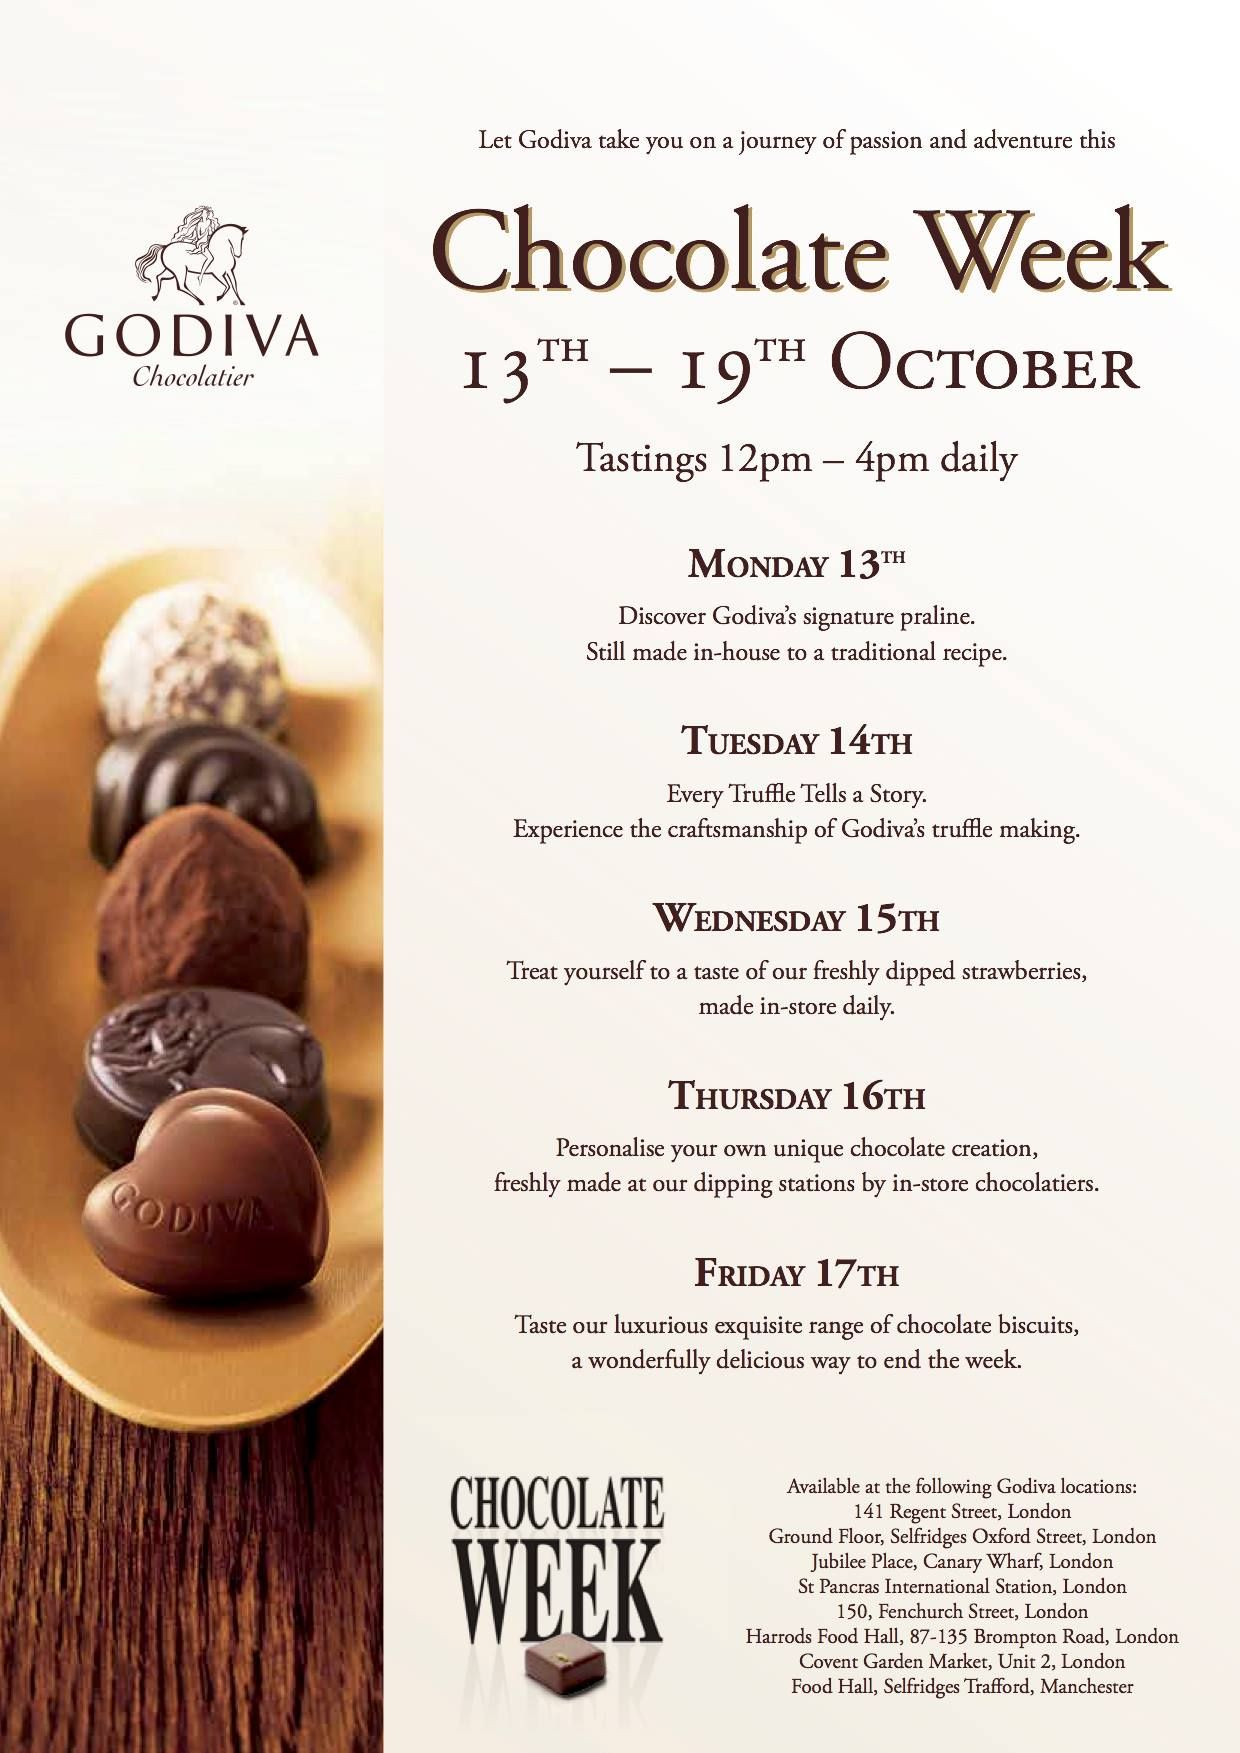 Let Godiva Take You On A Journey Of Passion And Adventure